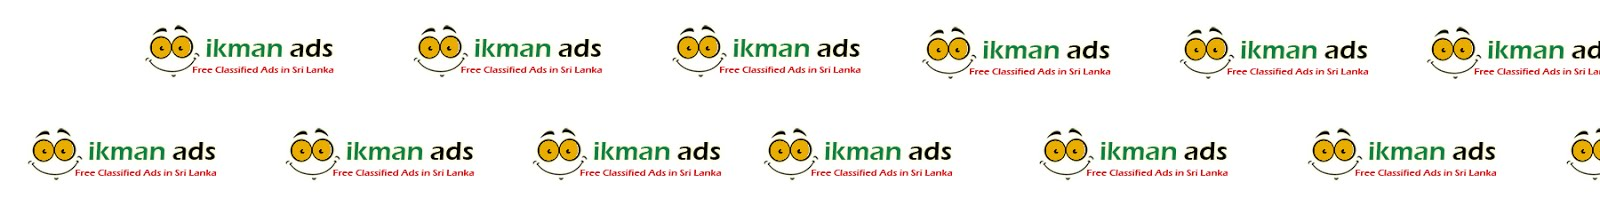 All ads - Classifieds in Sri Lanka on ikman.lk